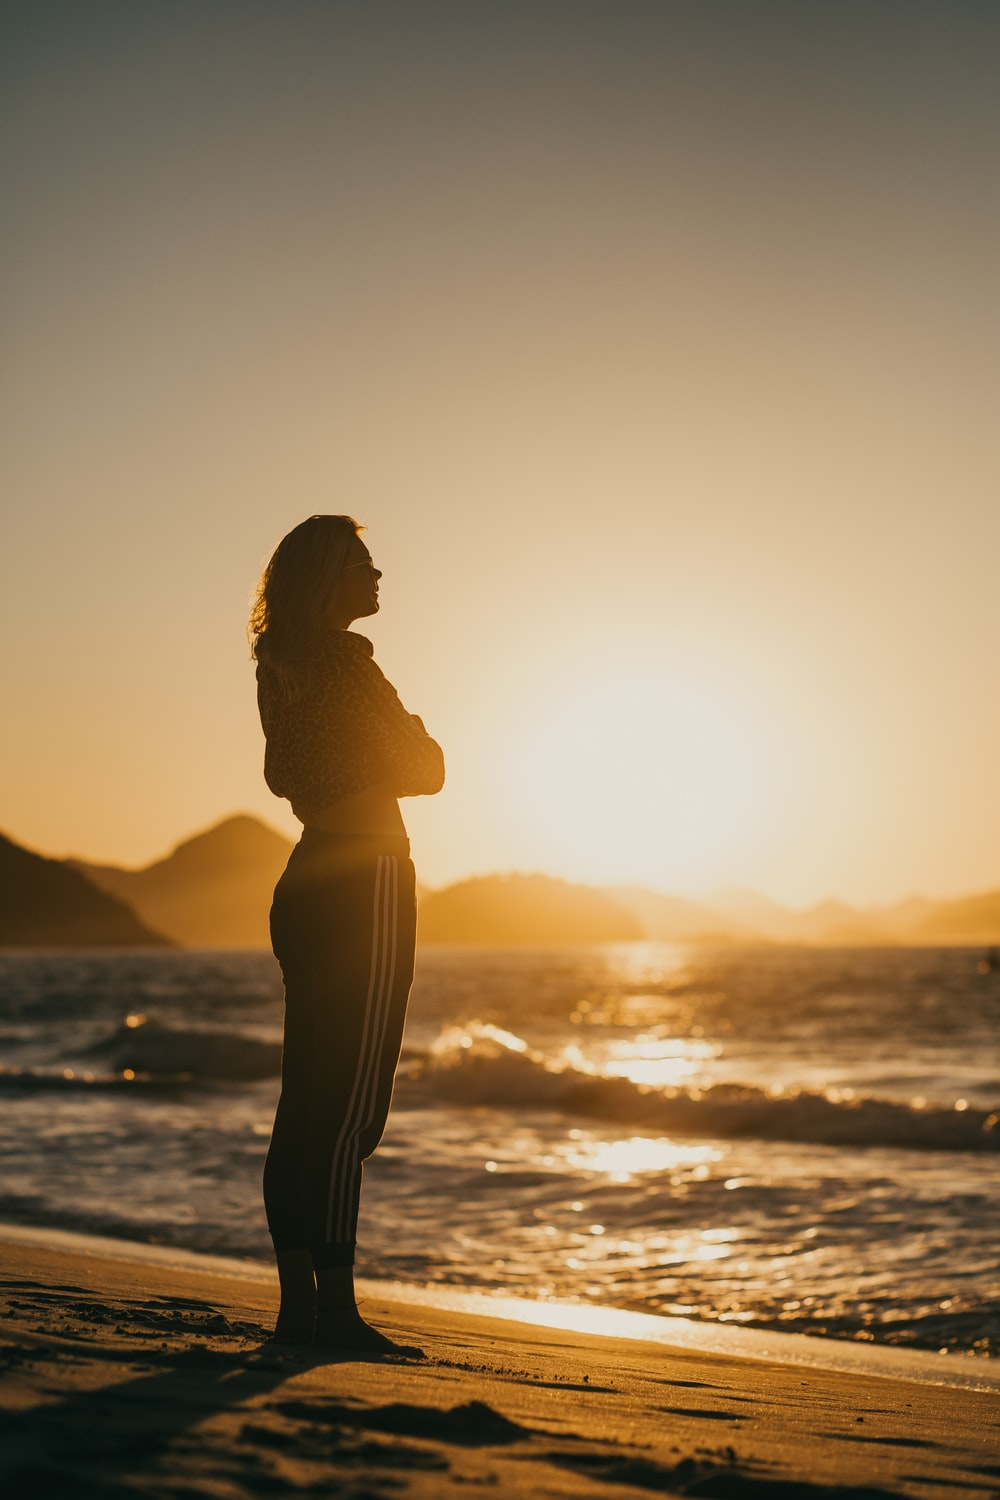 silhouette of woman standing on seashore during sunset